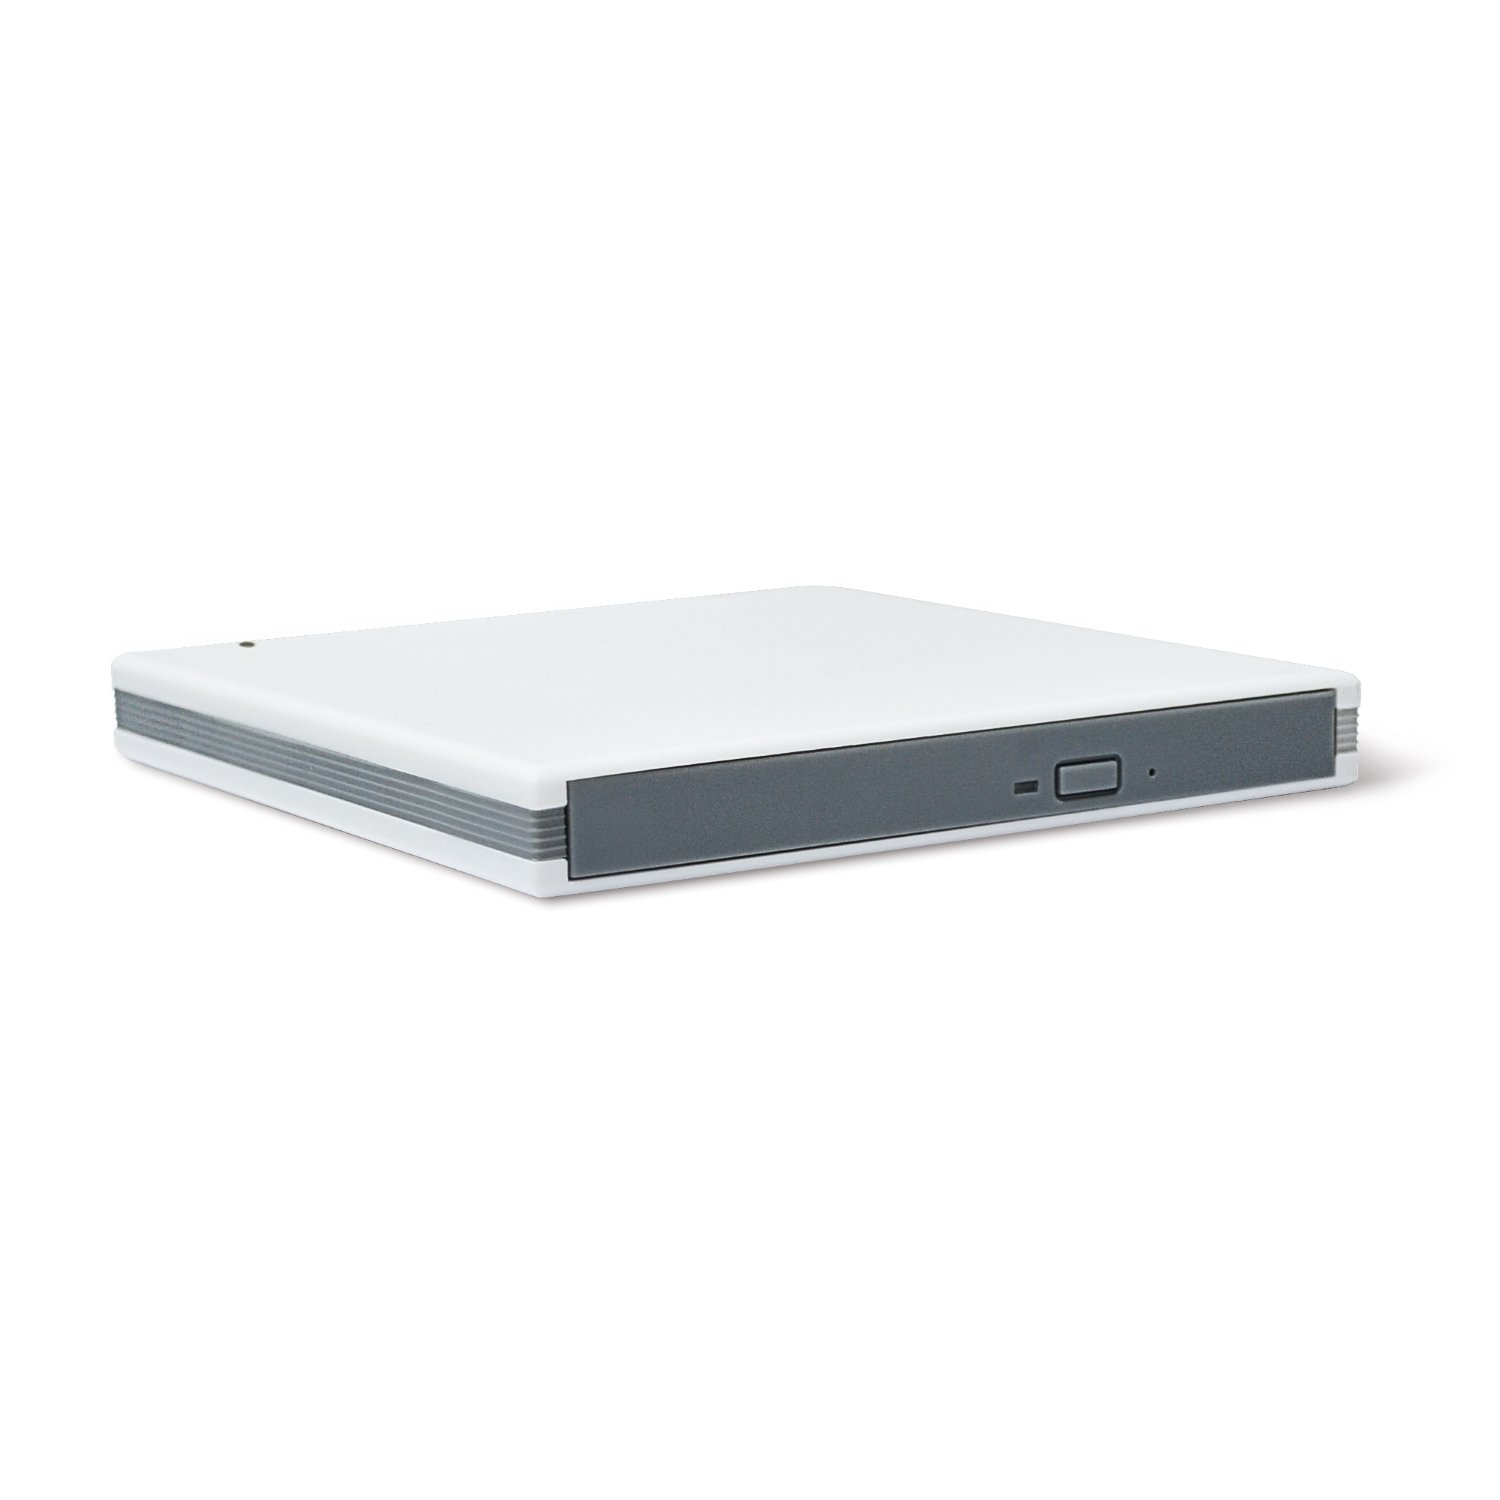 Firstcom USB 3.0 Carcasa/Case para Slim 12,7 mm SATA Blu-ray/DVD/CD unidad admitidas blanco y gris